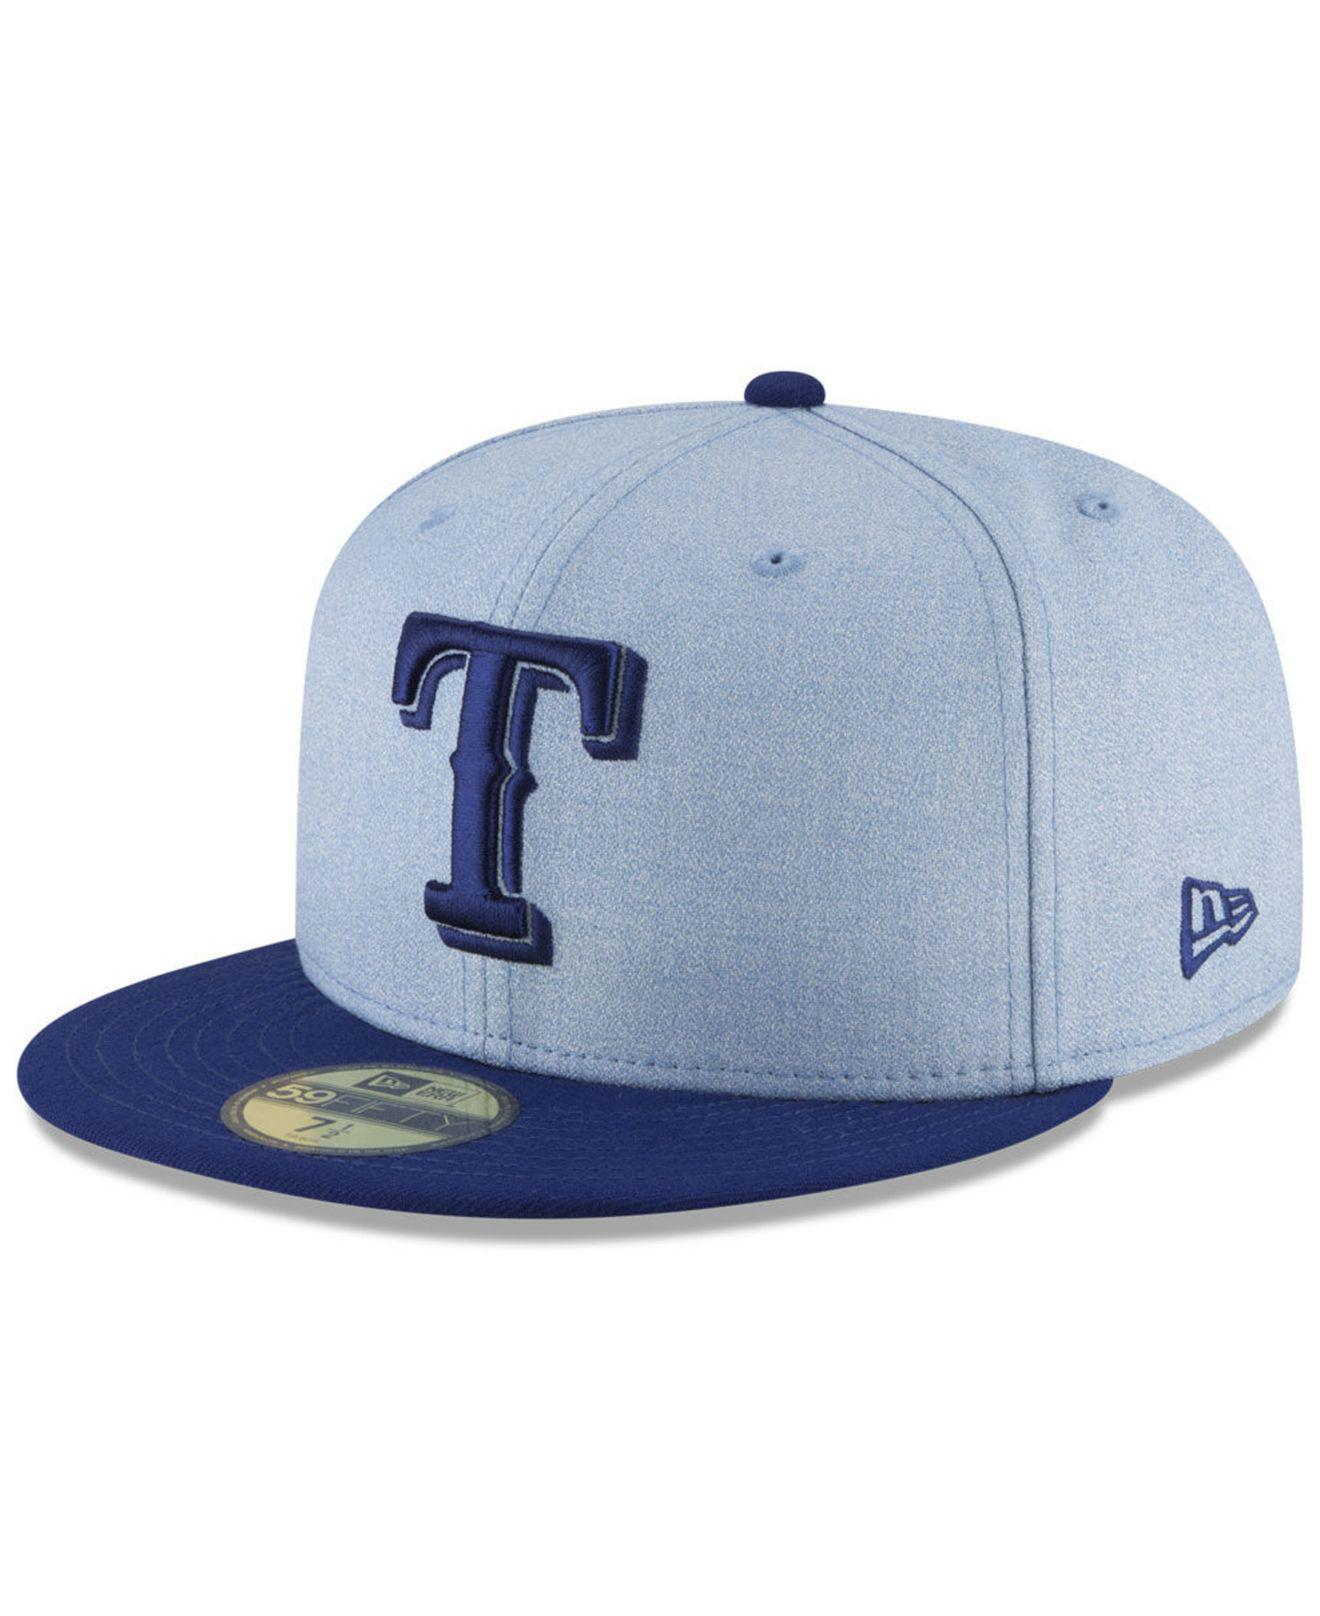 timeless design 3c984 09713 ... inexpensive ktz. mens blue texas rangers fathers day 59fifty fitted cap  2018 039bb be773